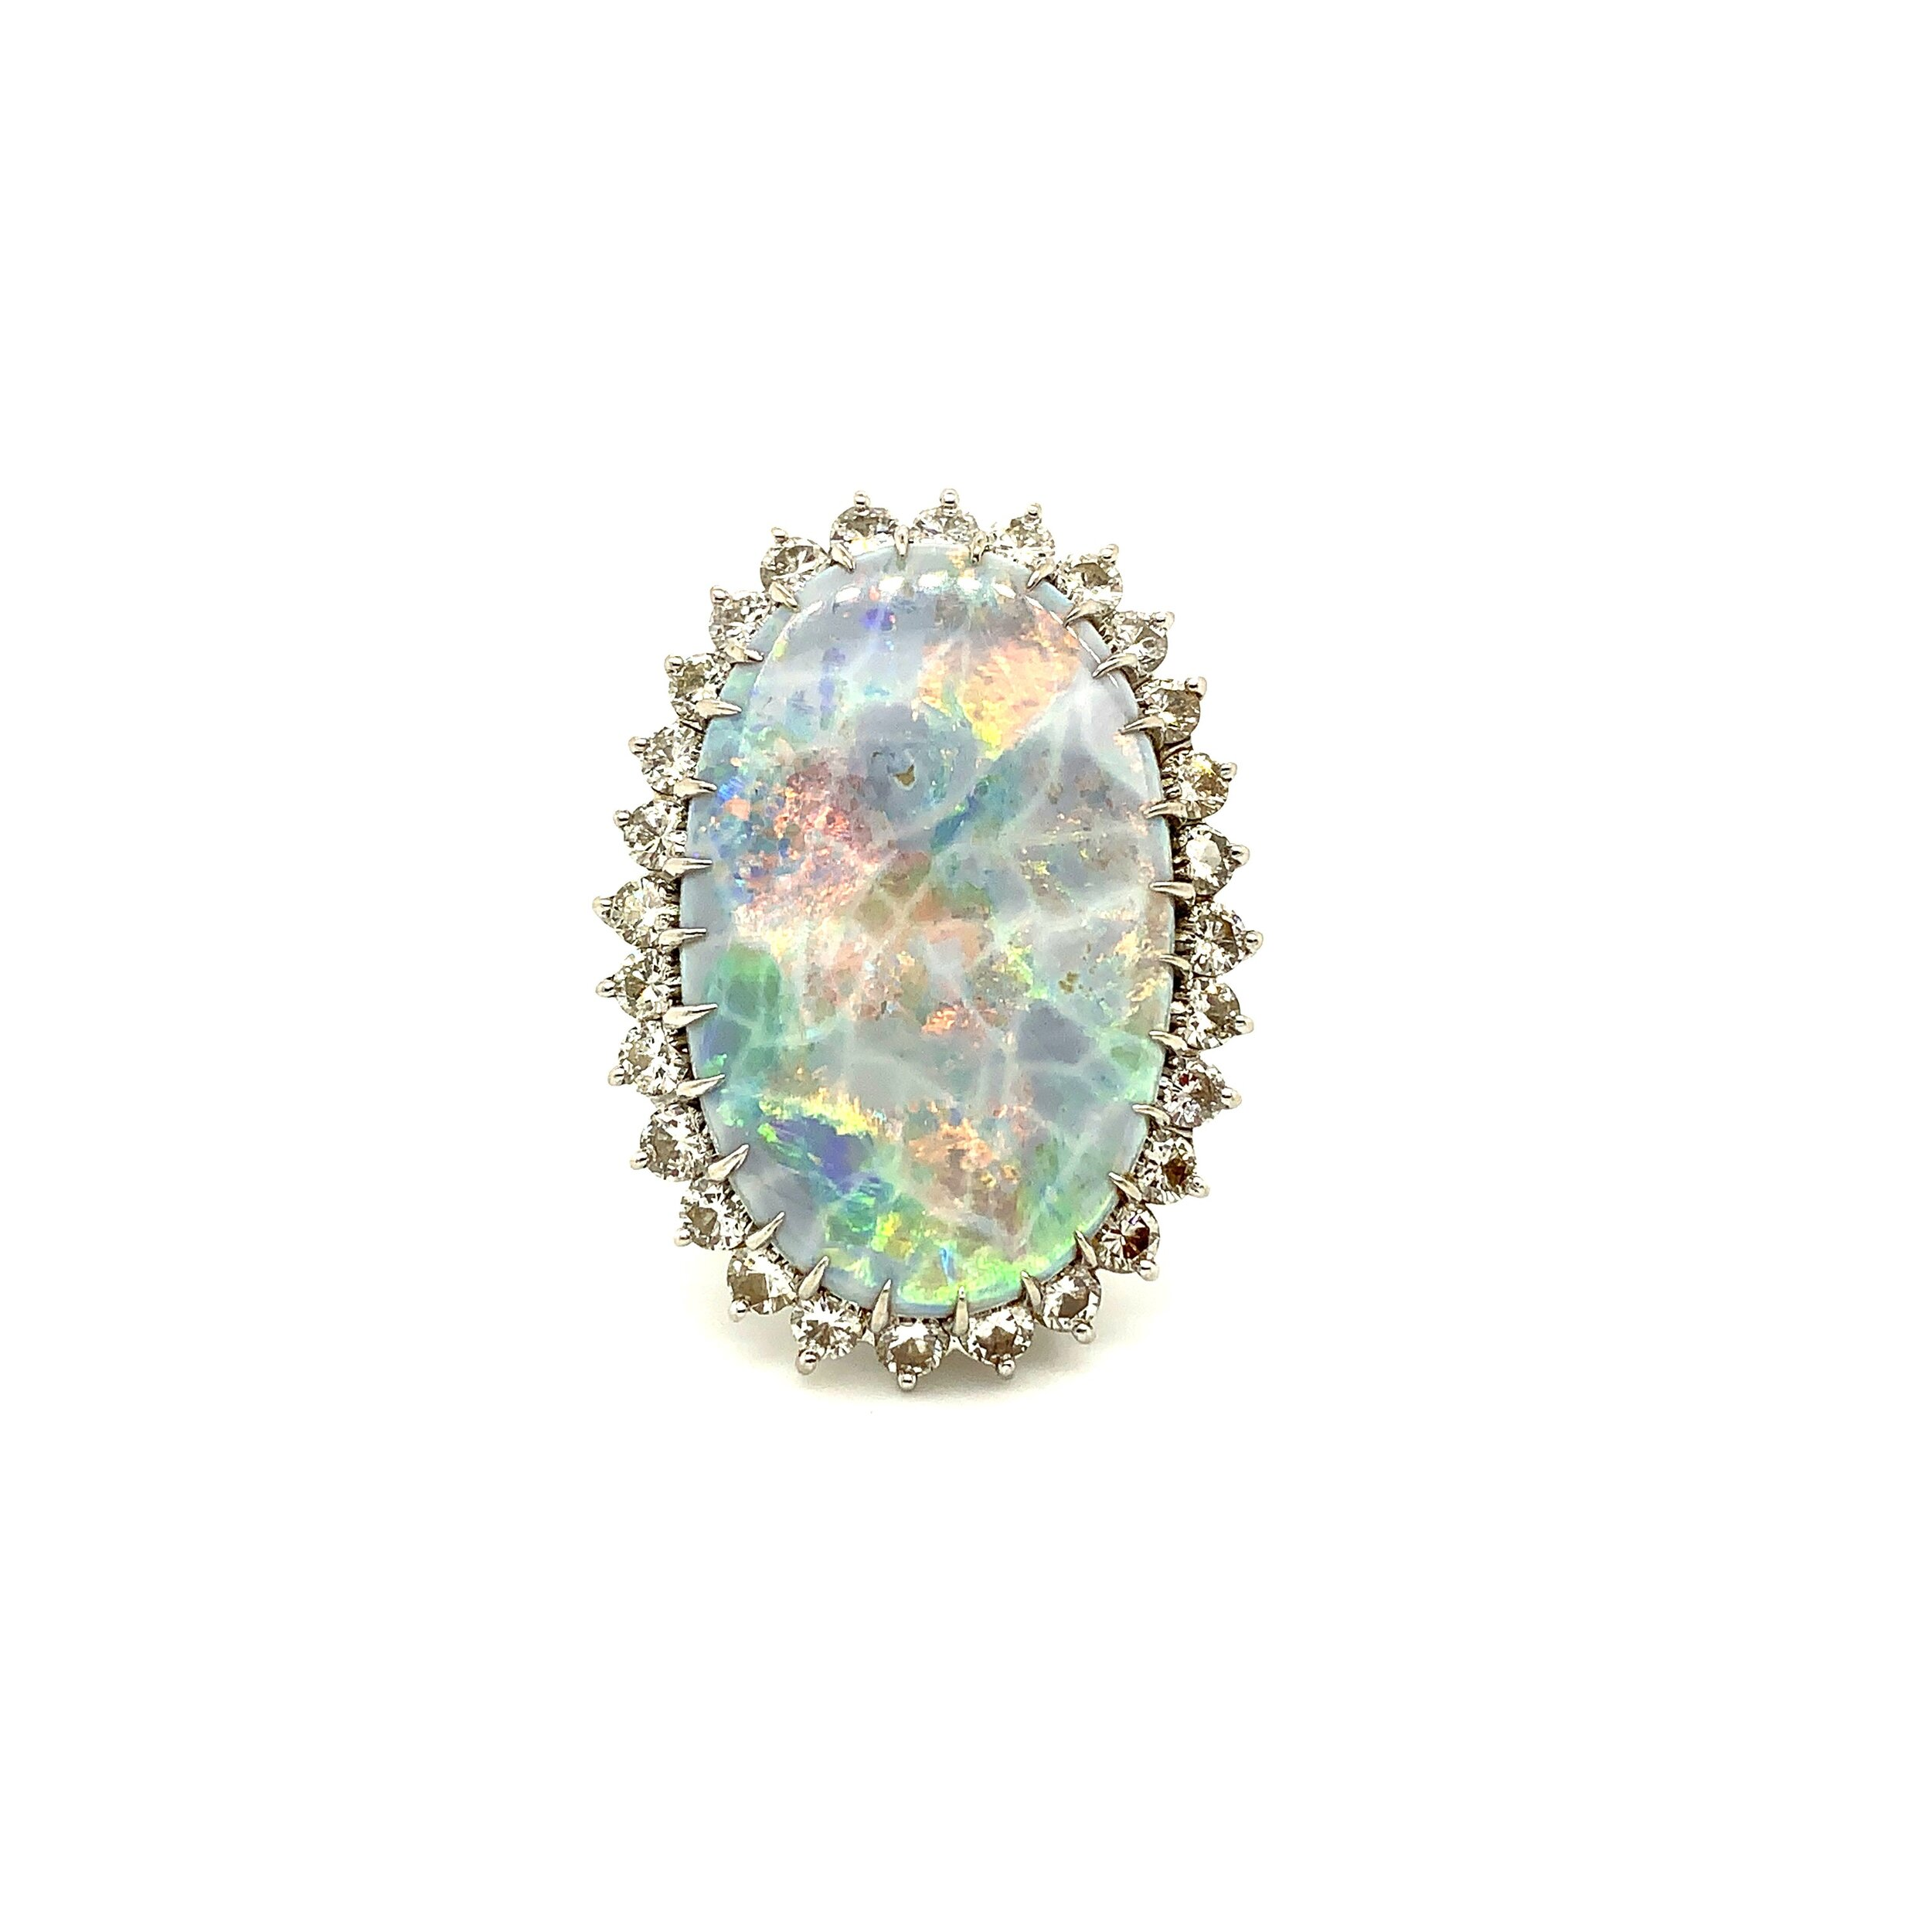 10ct Black Opal Ring with 2.75ct Diamond Mounting in 14 Karat Gold  Est. US$ 2,500-4,000